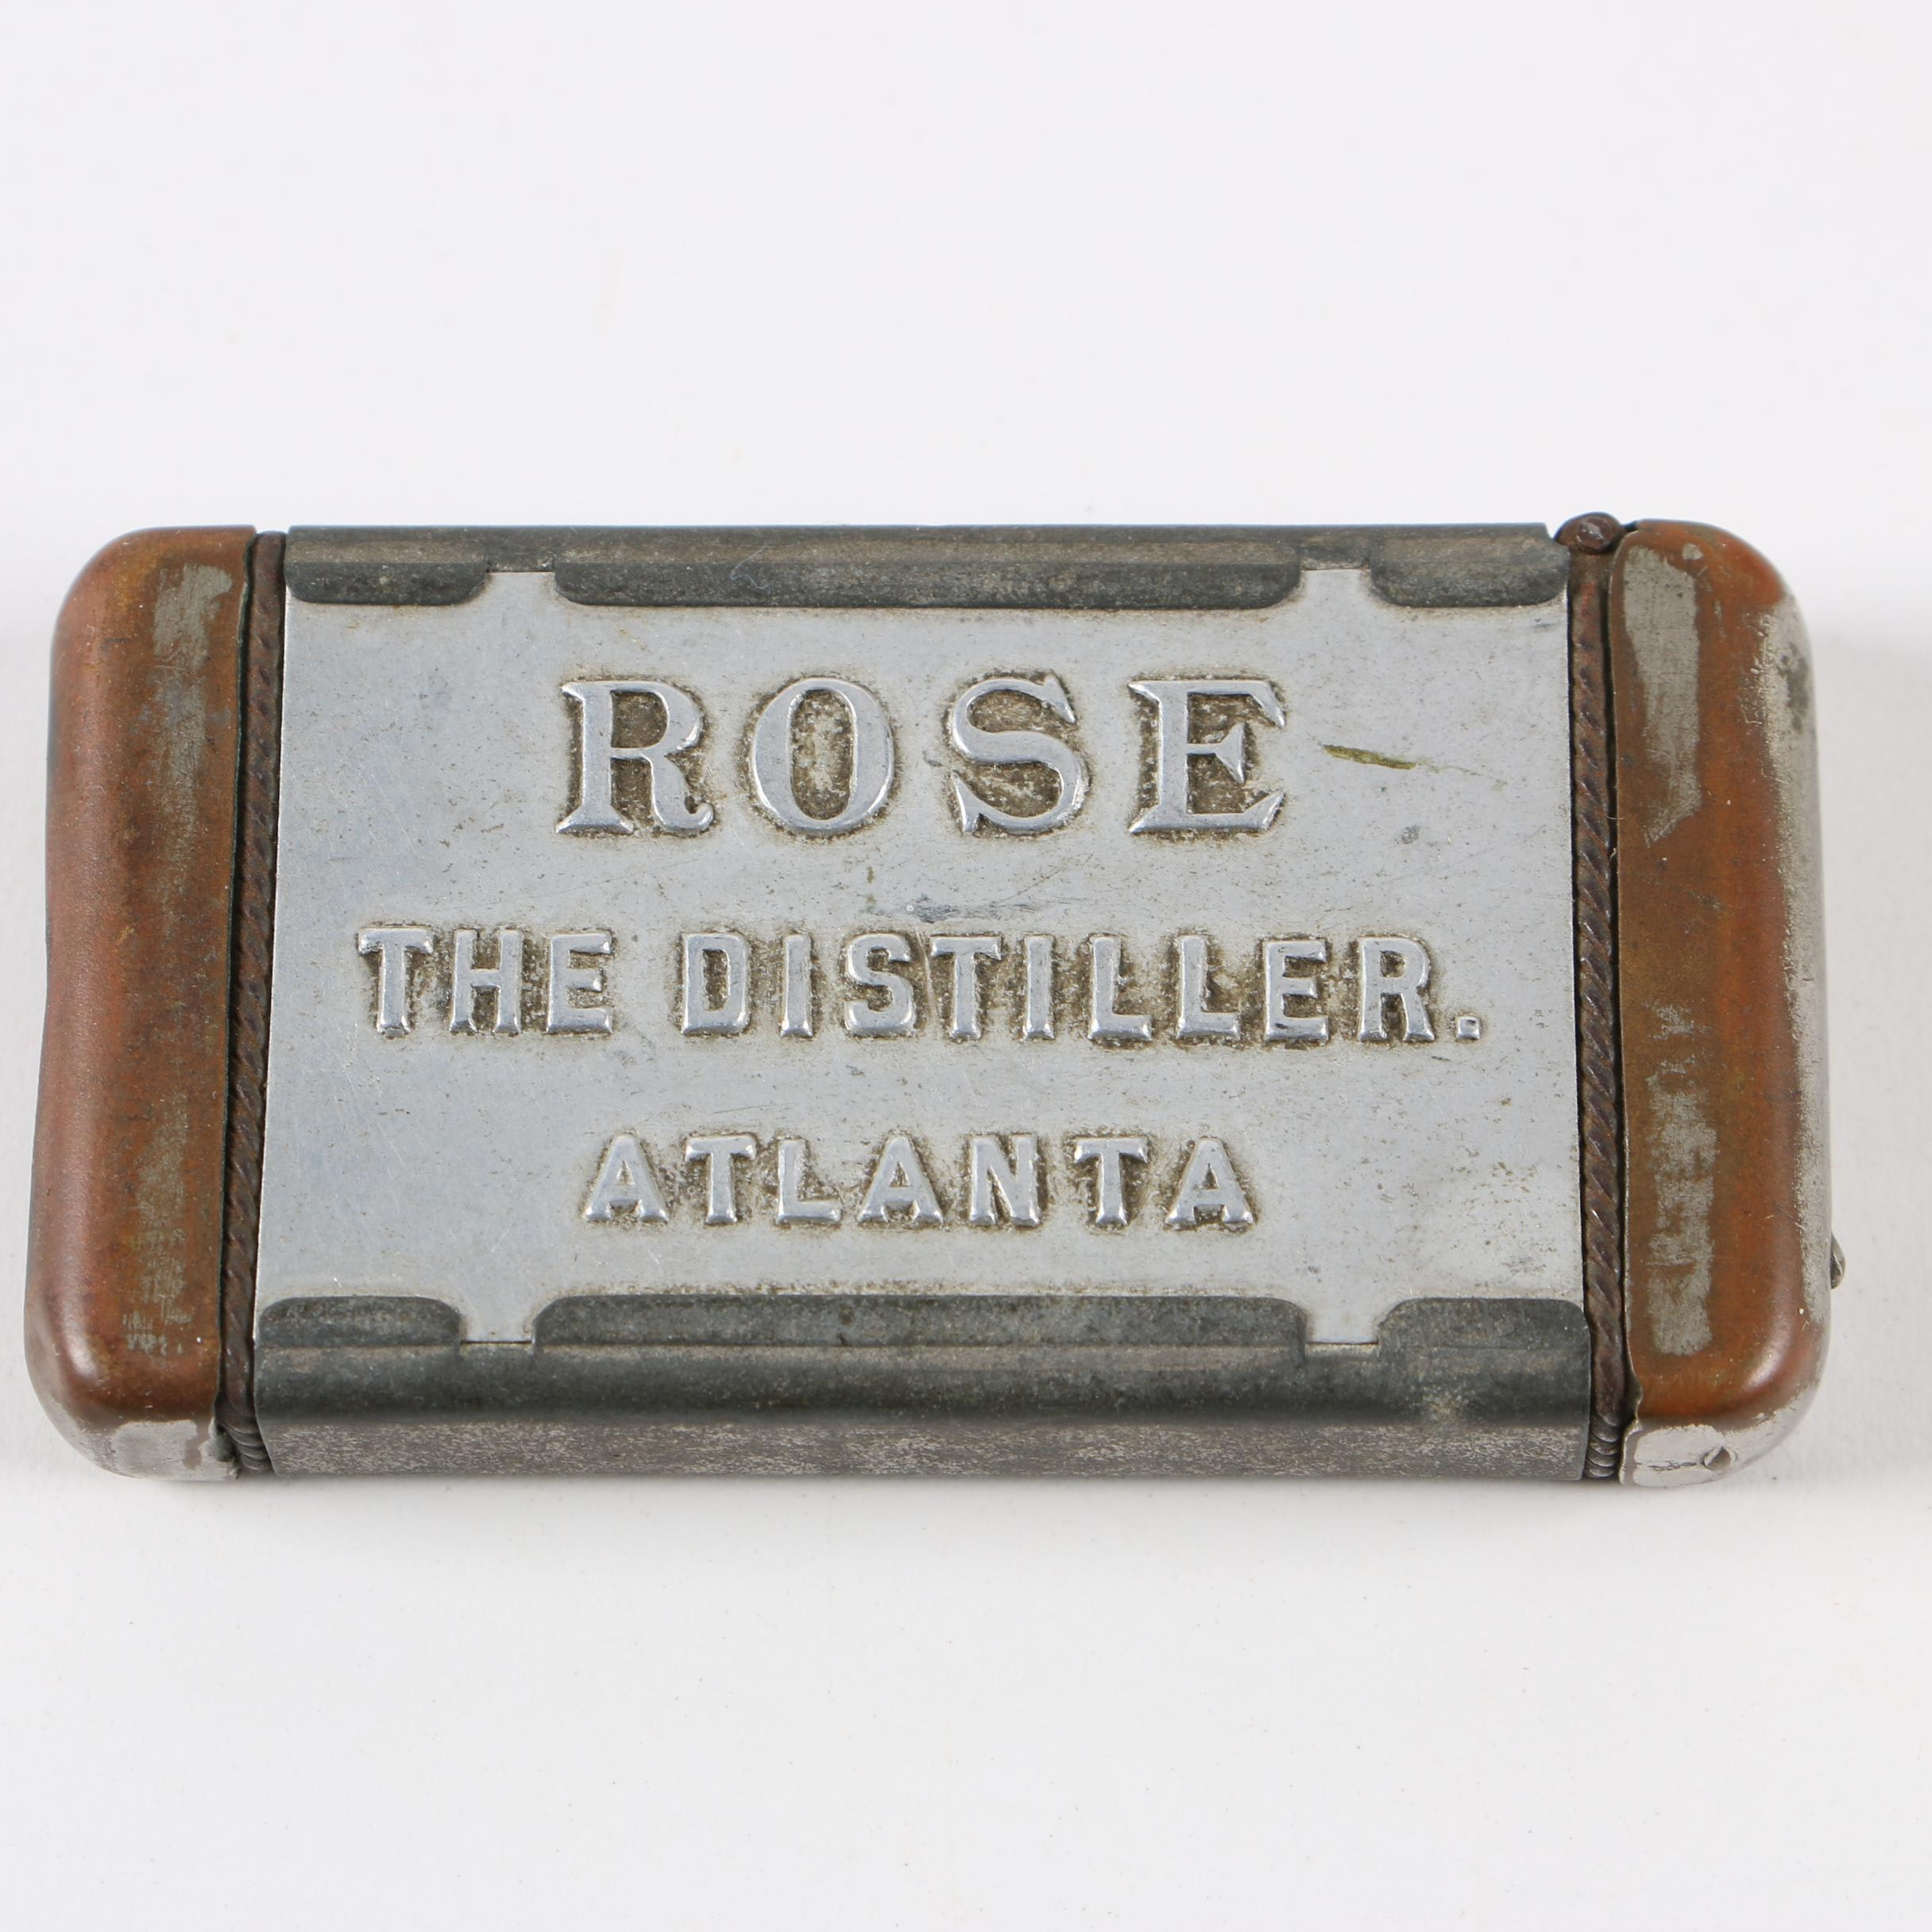 N.J. Aluminum Co. Lighter Case, Late 19th-Early 20th Century